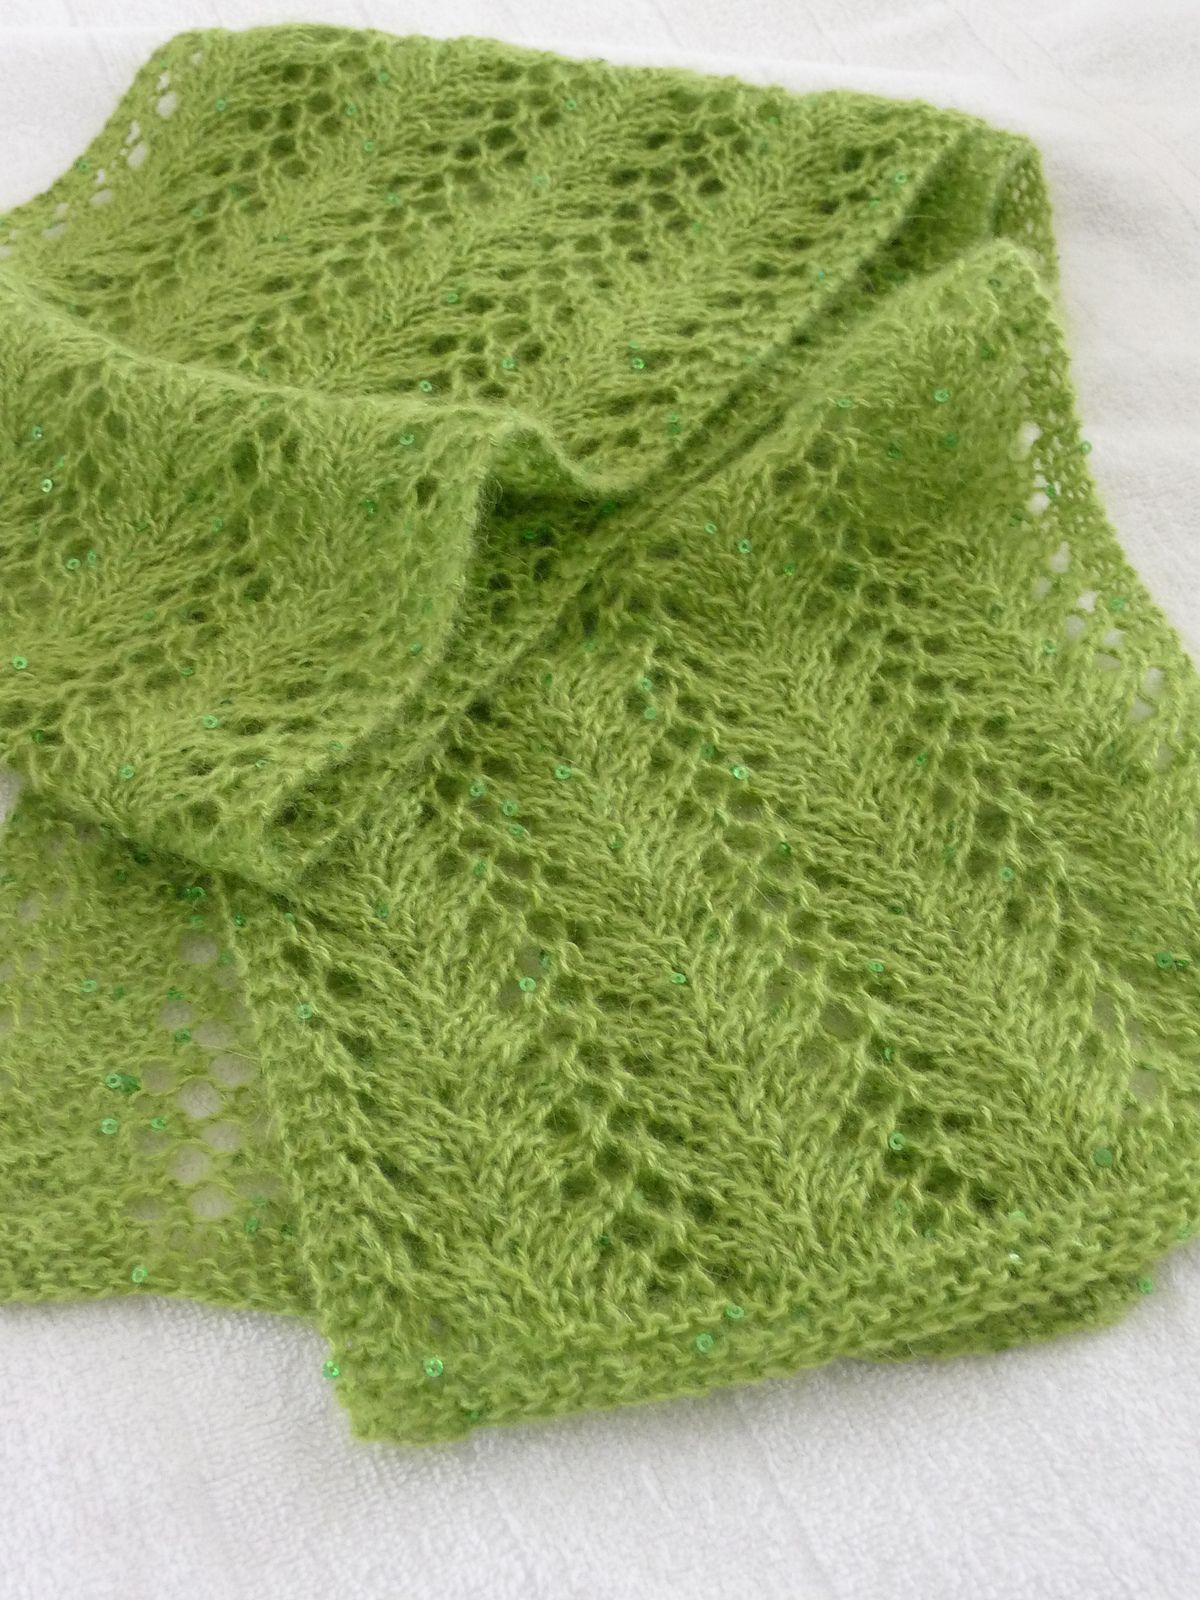 Ravelry project gallery for strangling vine lace scarf pattern by ravelry project gallery for strangling vine lace scarf pattern by nicole hindes bankloansurffo Choice Image